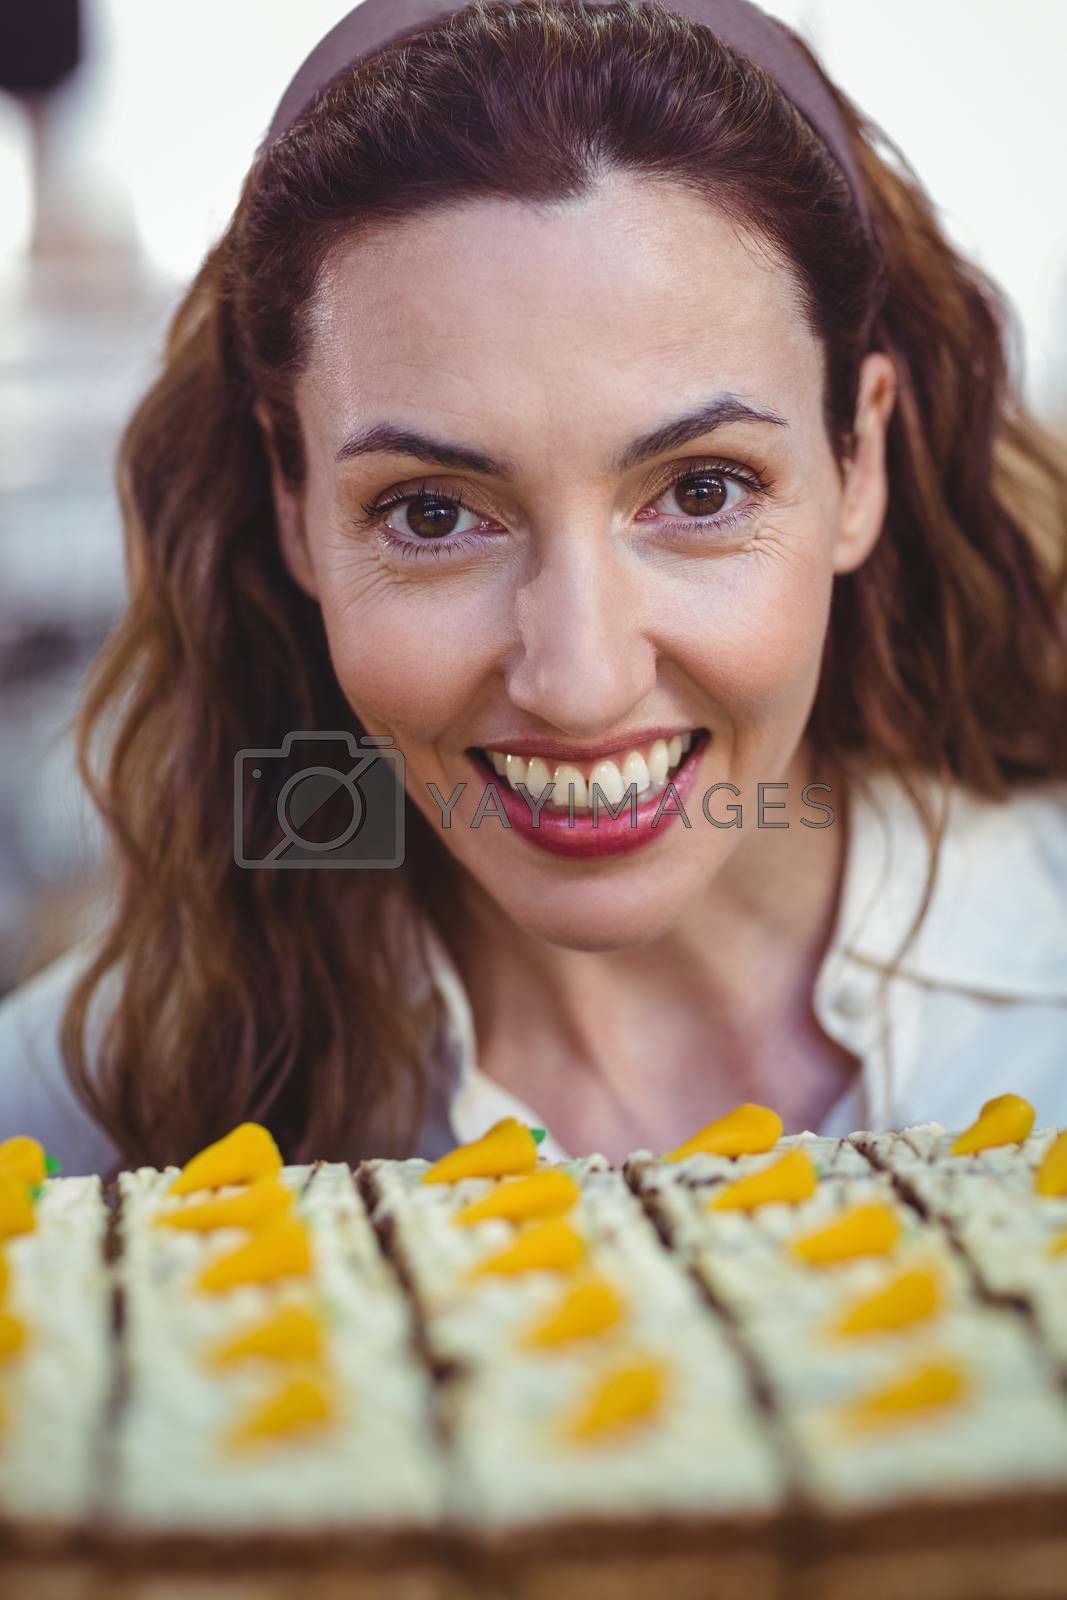 Royalty free image of Pretty brunette looking at pastries by Wavebreakmedia